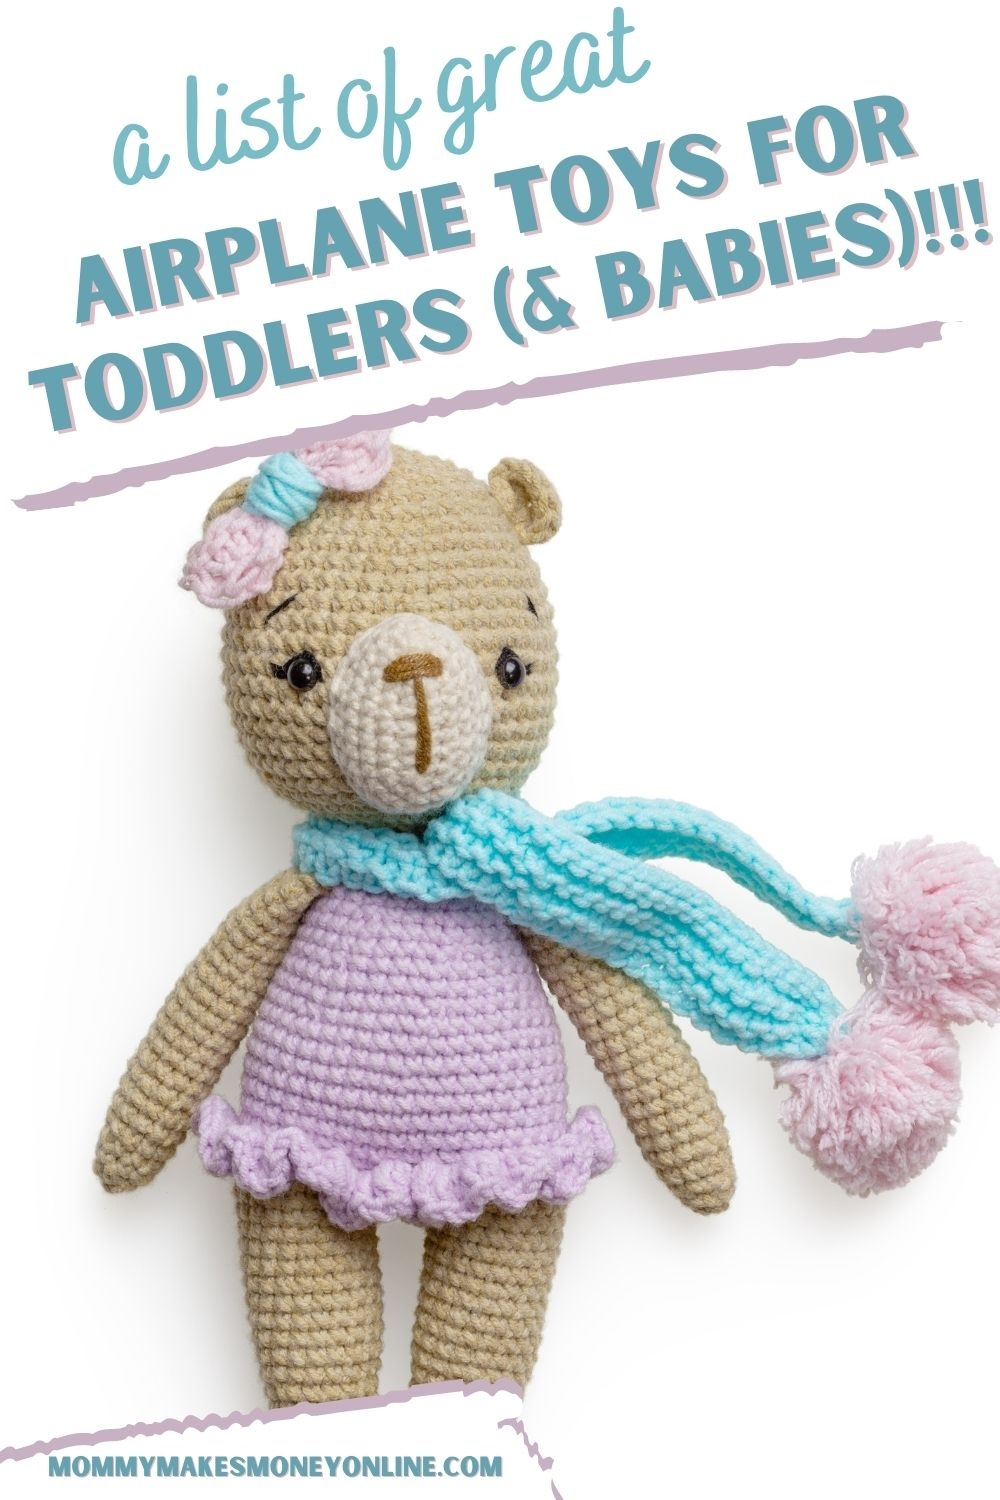 Best Plane Toys For Toddlers & Preschoolers The best toddler plane activities and travel toys for flying with toddlers. Learn how to keep your toddler entertained while flying so you can avoid a disaster of a flight! Fun travel toys for toddlers and preschool kids. Plane toys for toddlers and kids. Toddler travel toys and games.